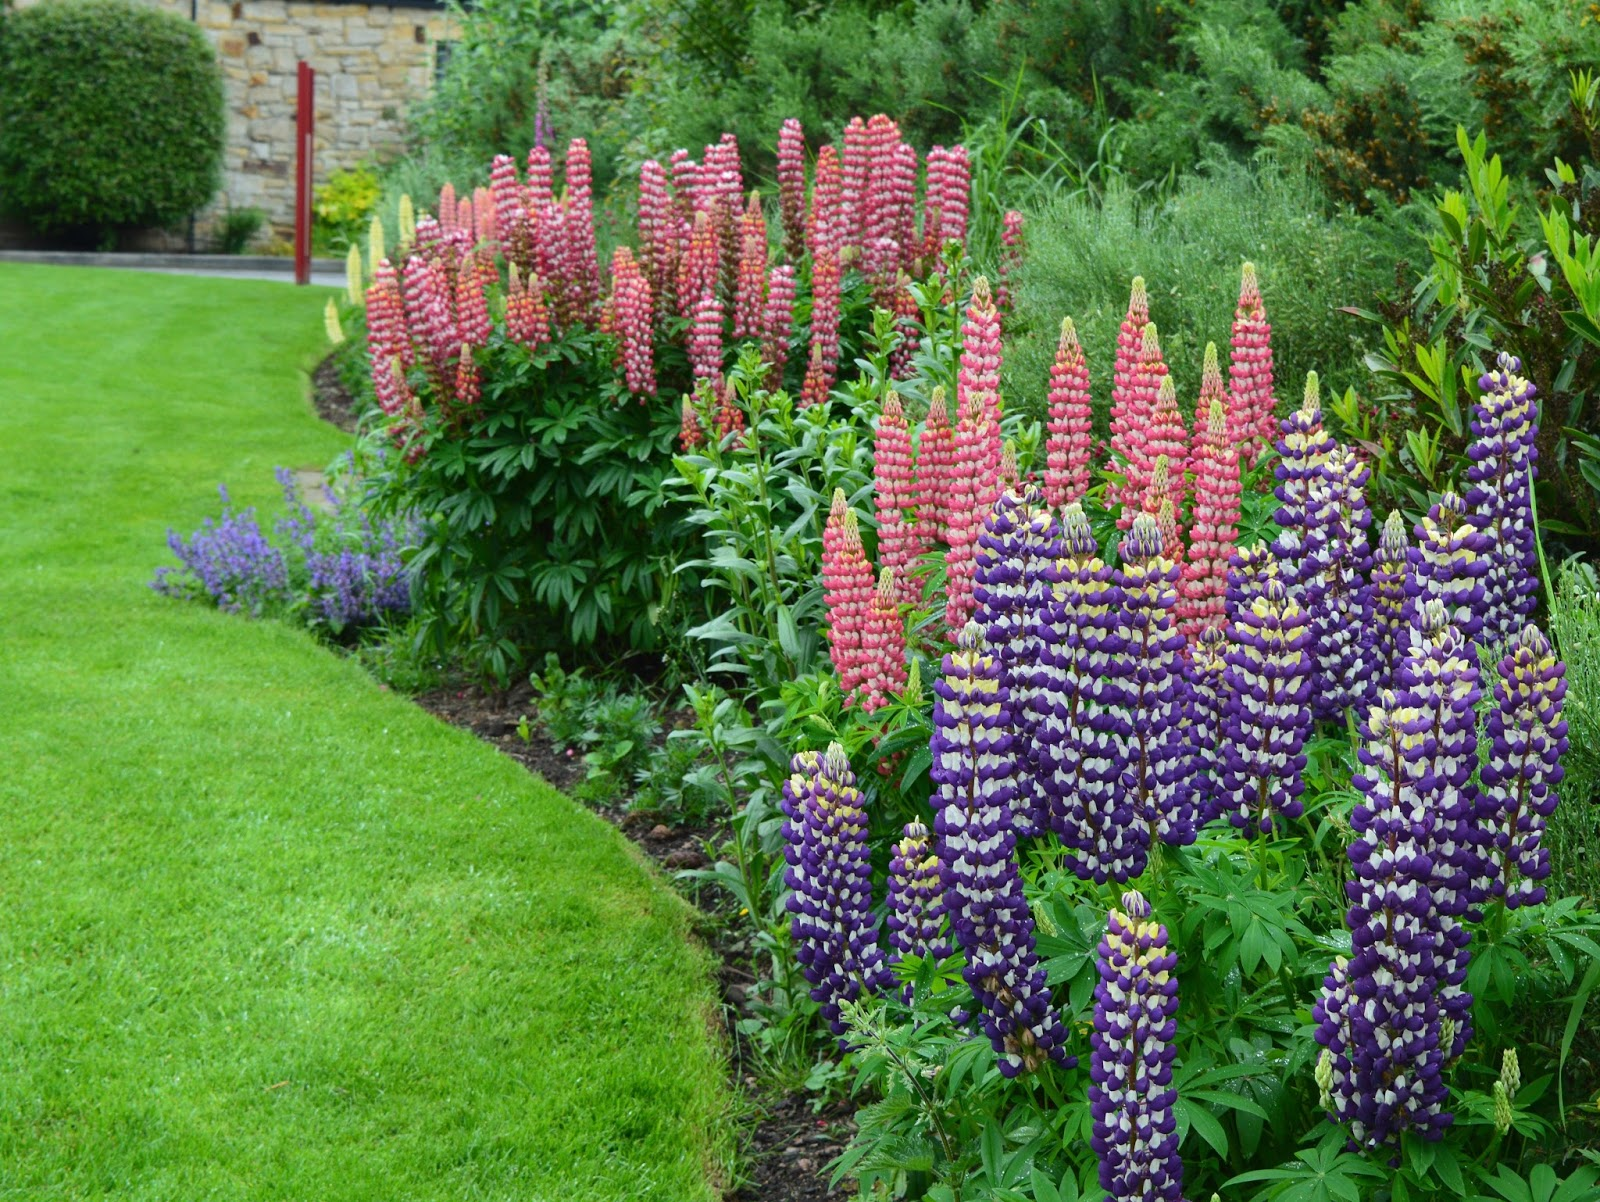 Overnight Stay at South Causey Inn | County Durham - Beer Garden Flowers